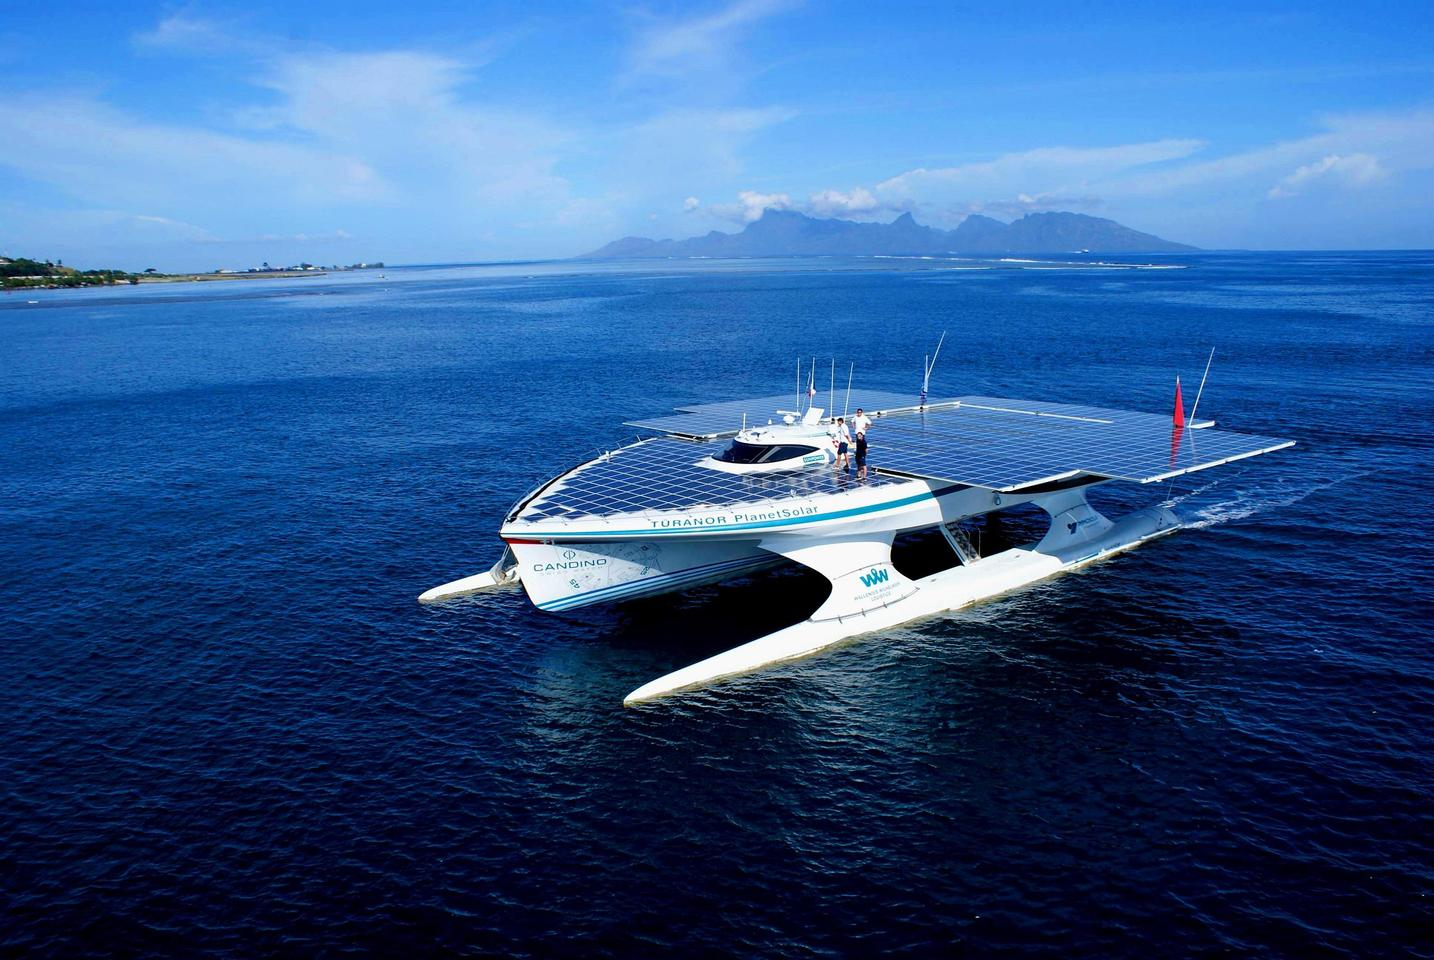 The TURANOR PlanetSolar, passing through Tahiti earlier on its voyage